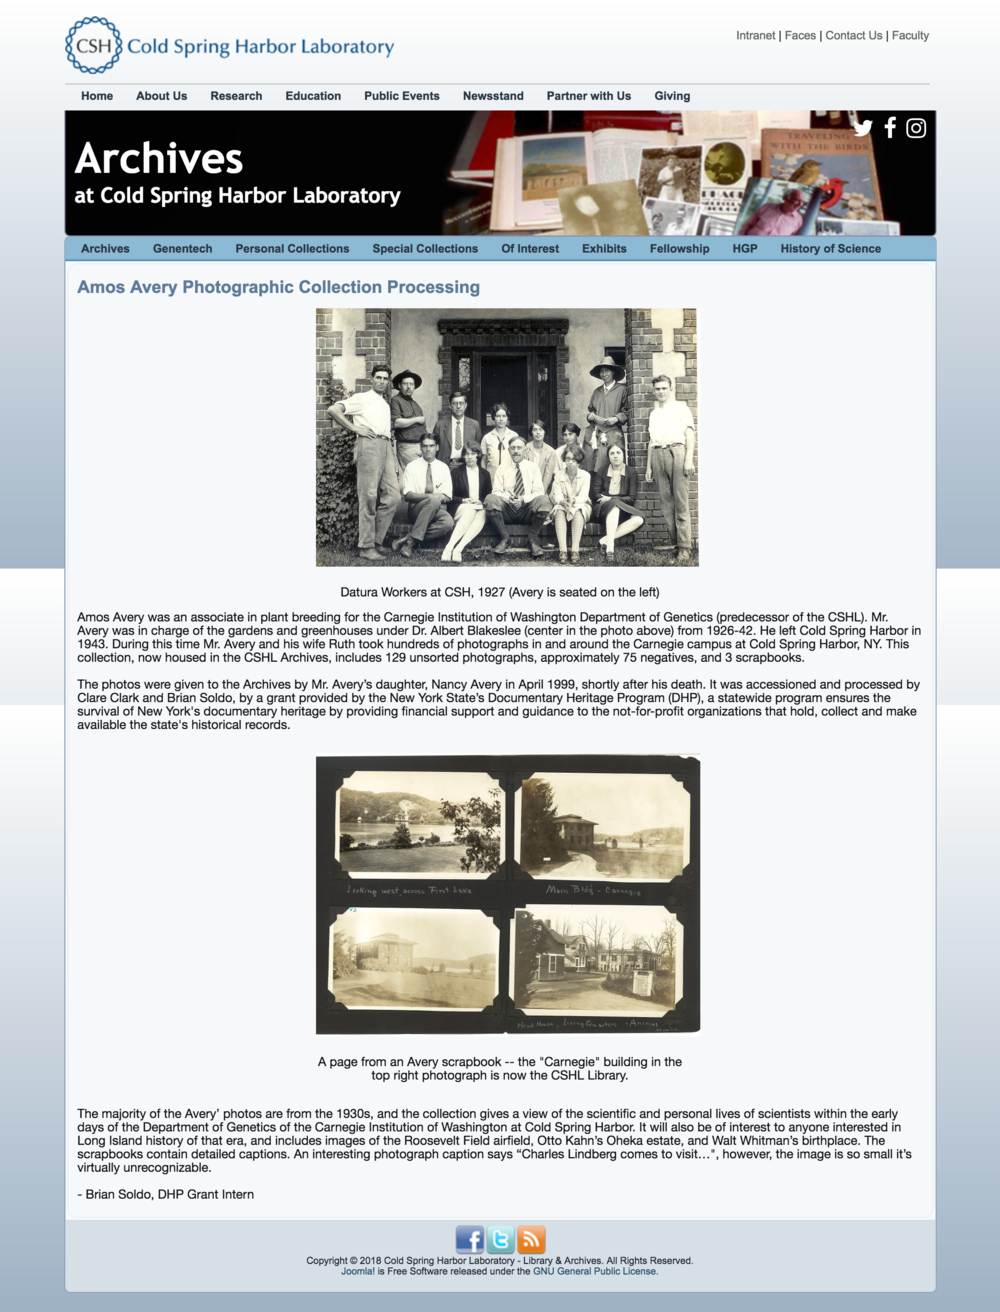 CSHL: Amos Avery Photographic Collection